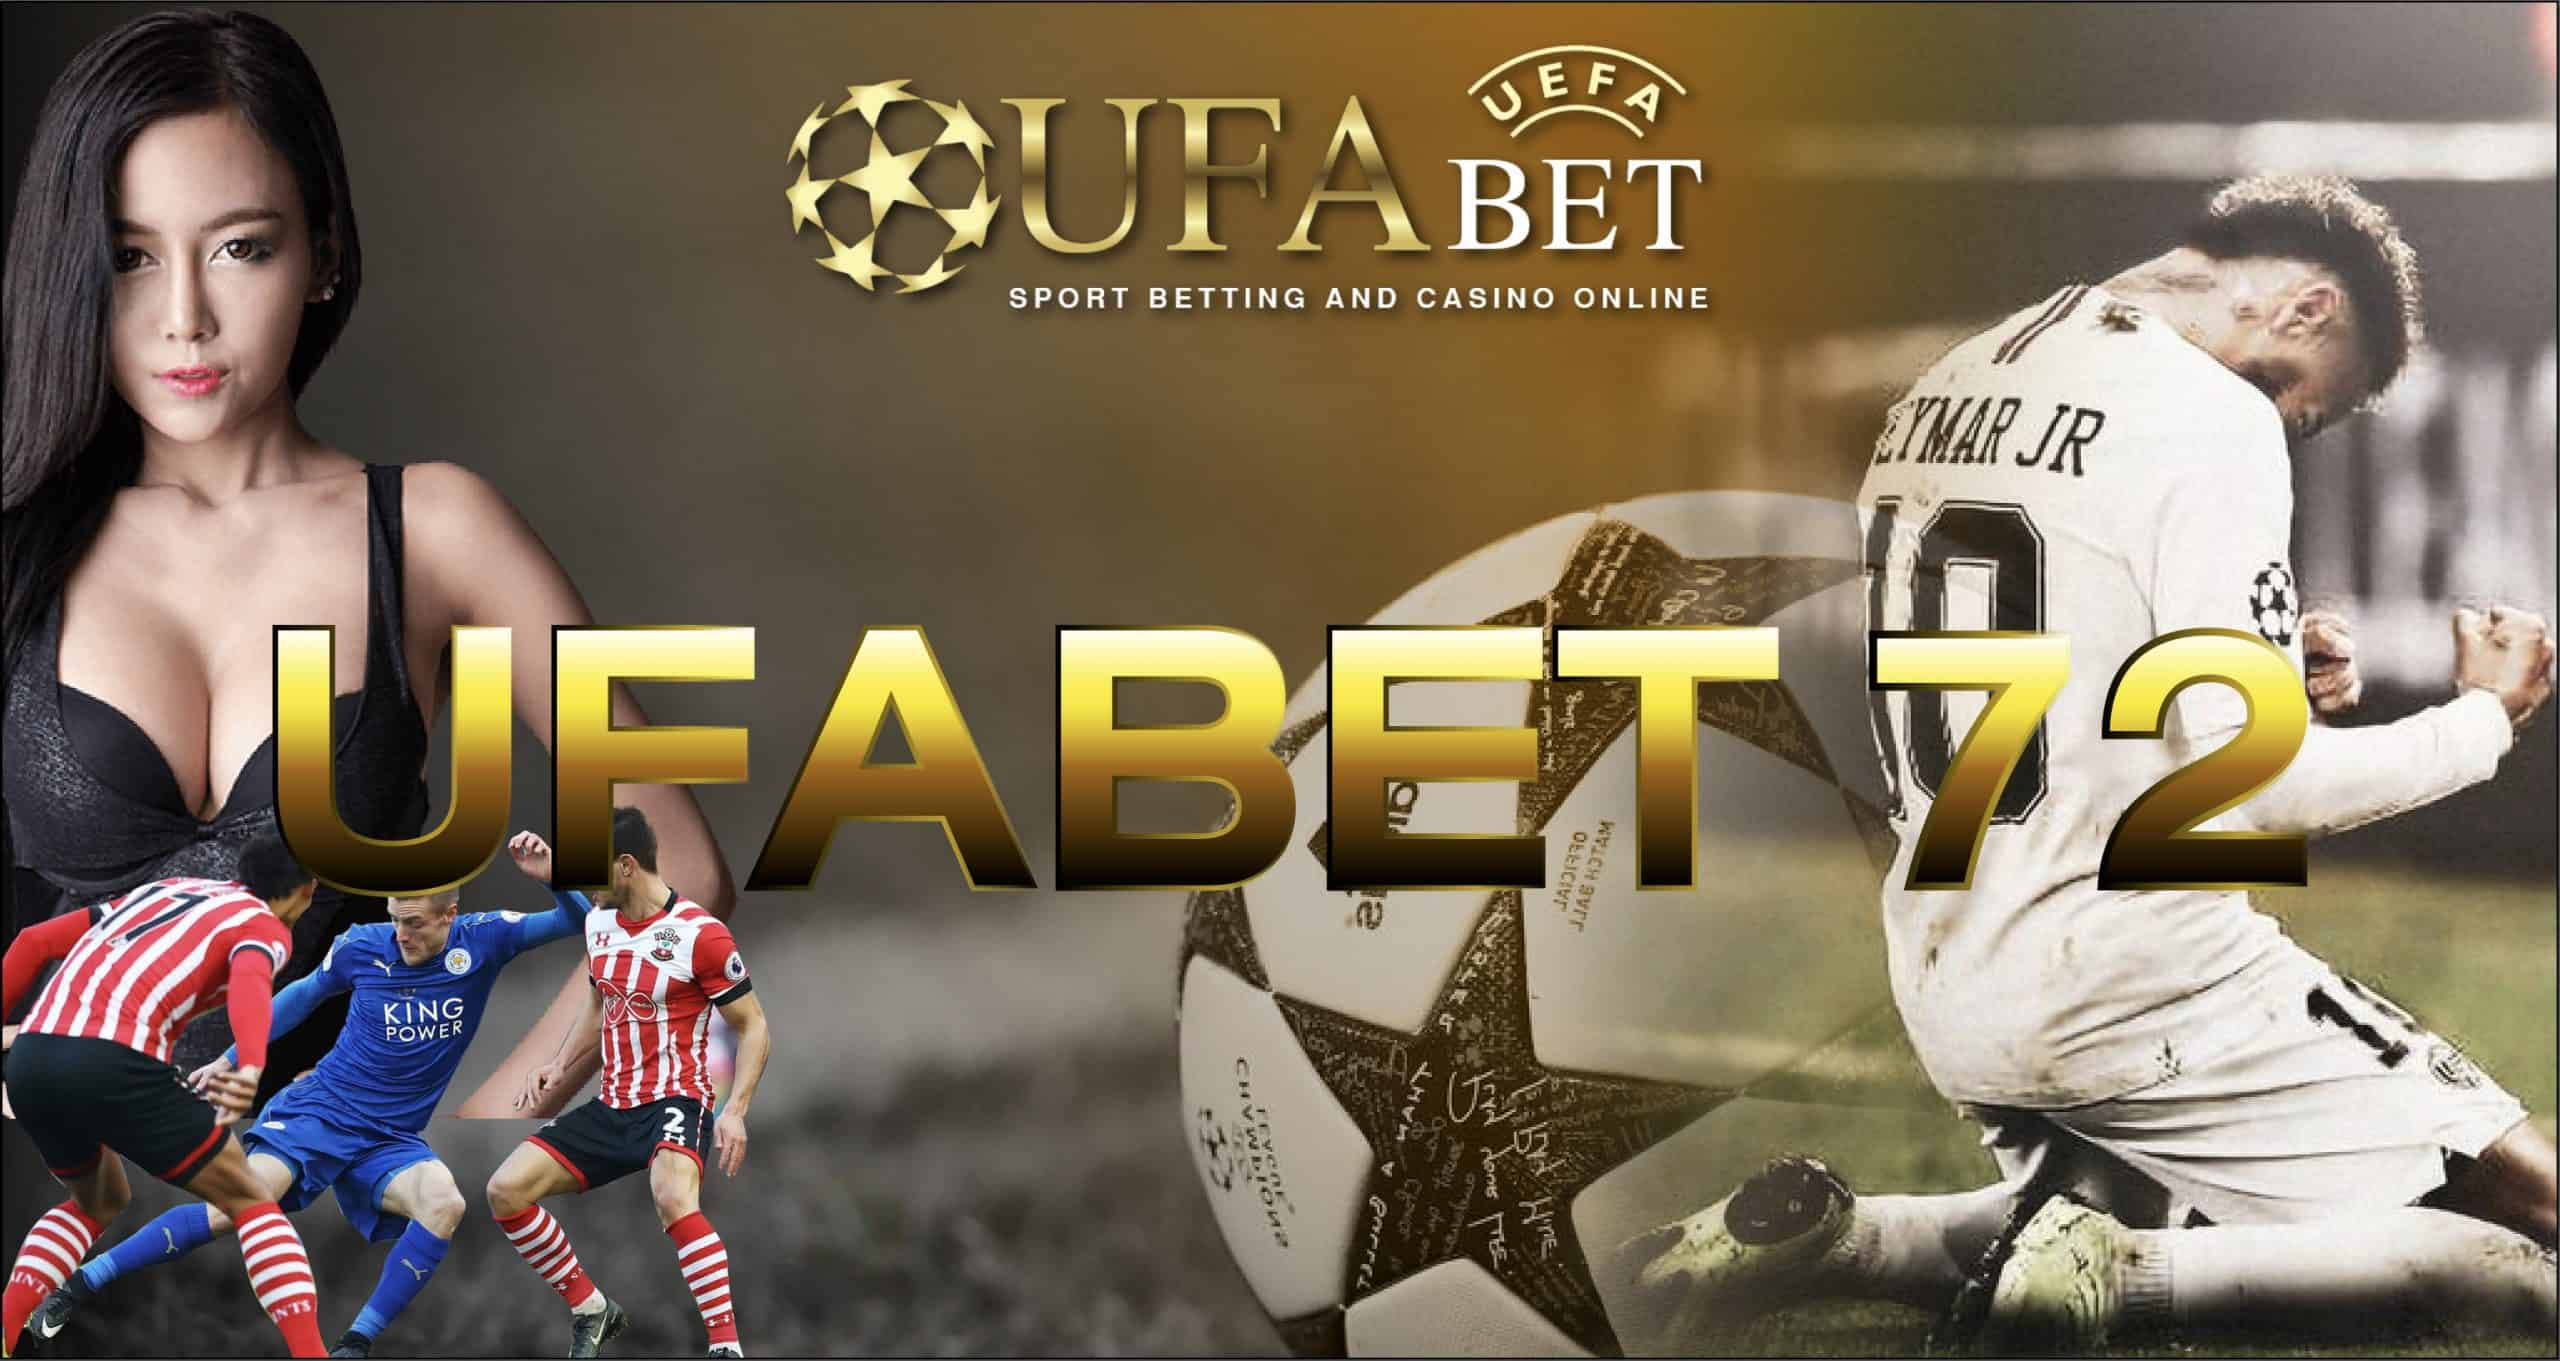 UFABET, the internet online games website of your own respective UFA365 platform and Asia innovator